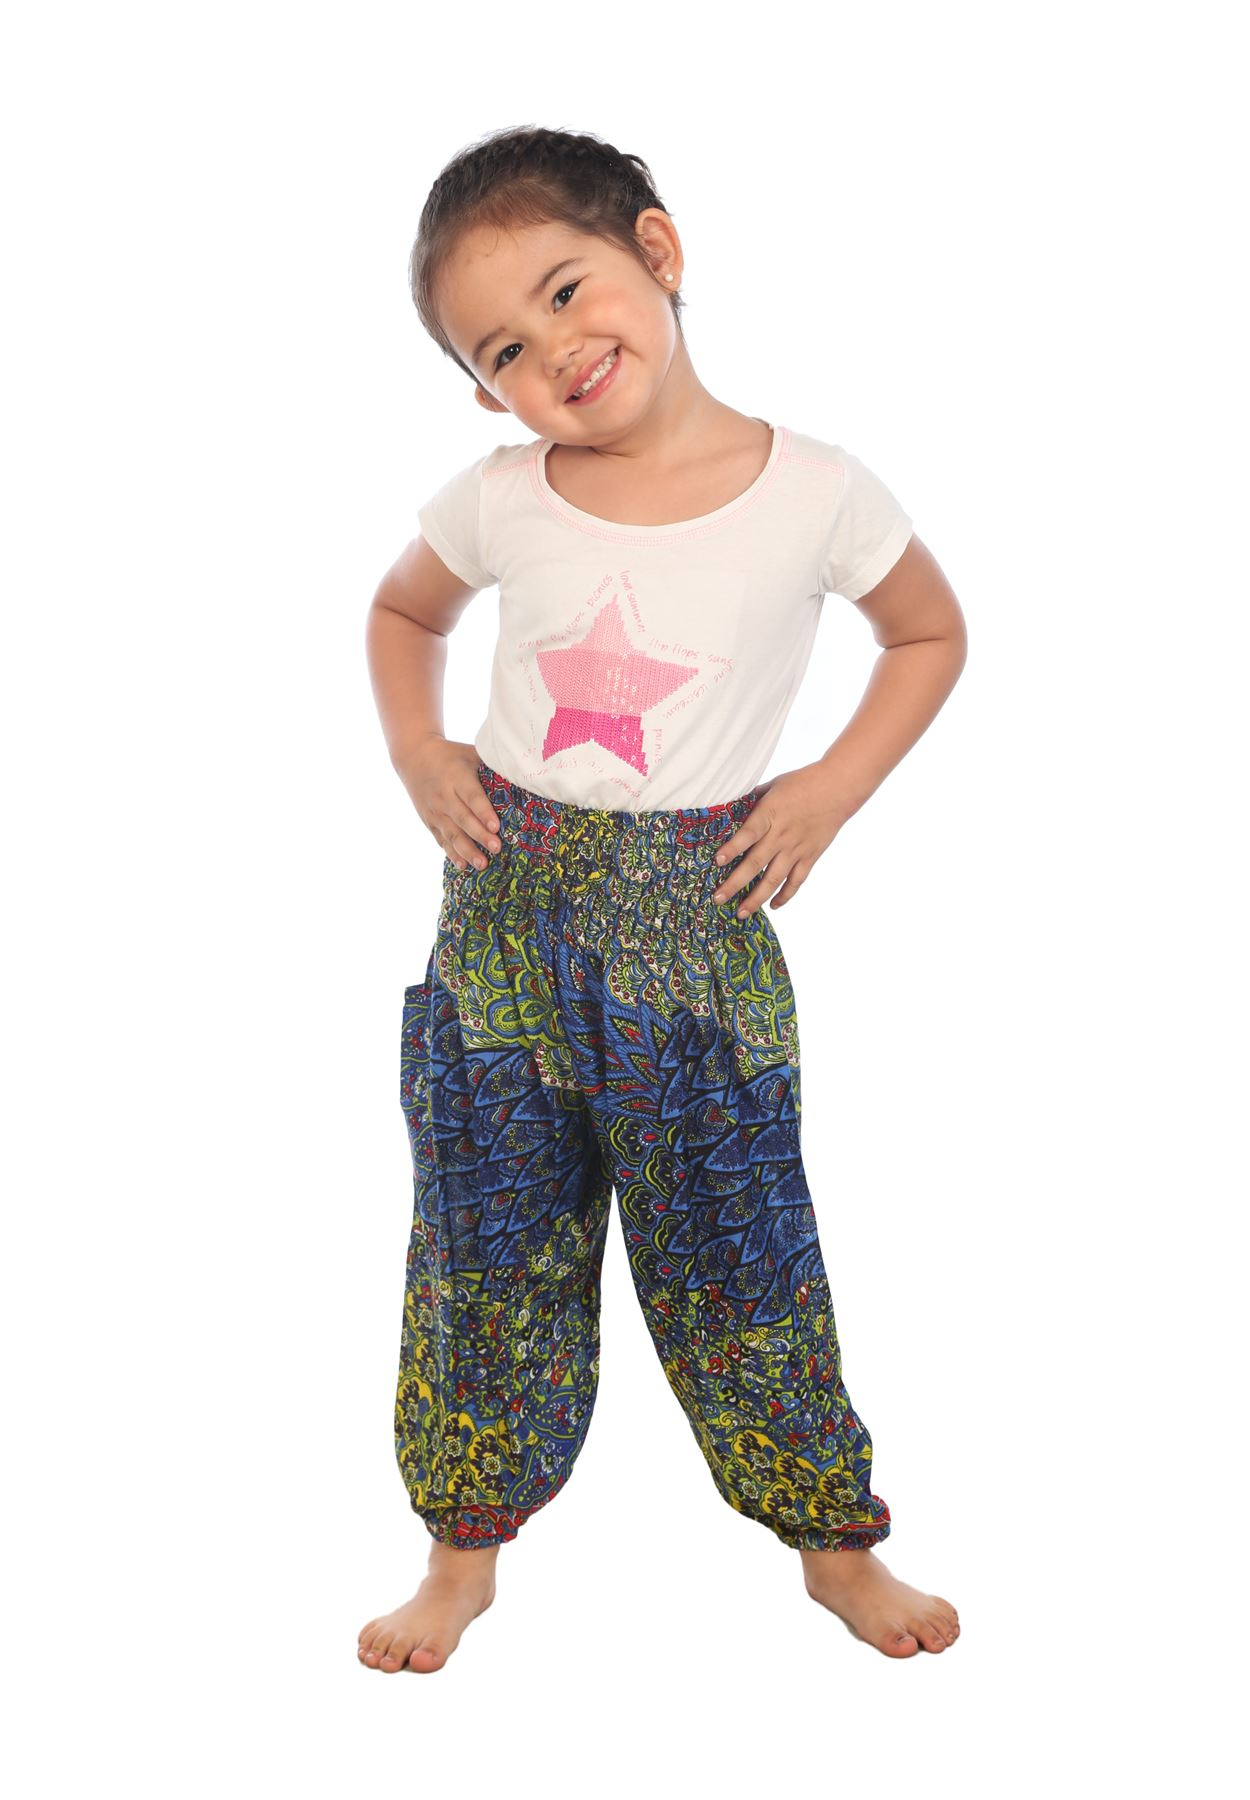 Find great deals on eBay for harem pants kids. Shop with confidence.